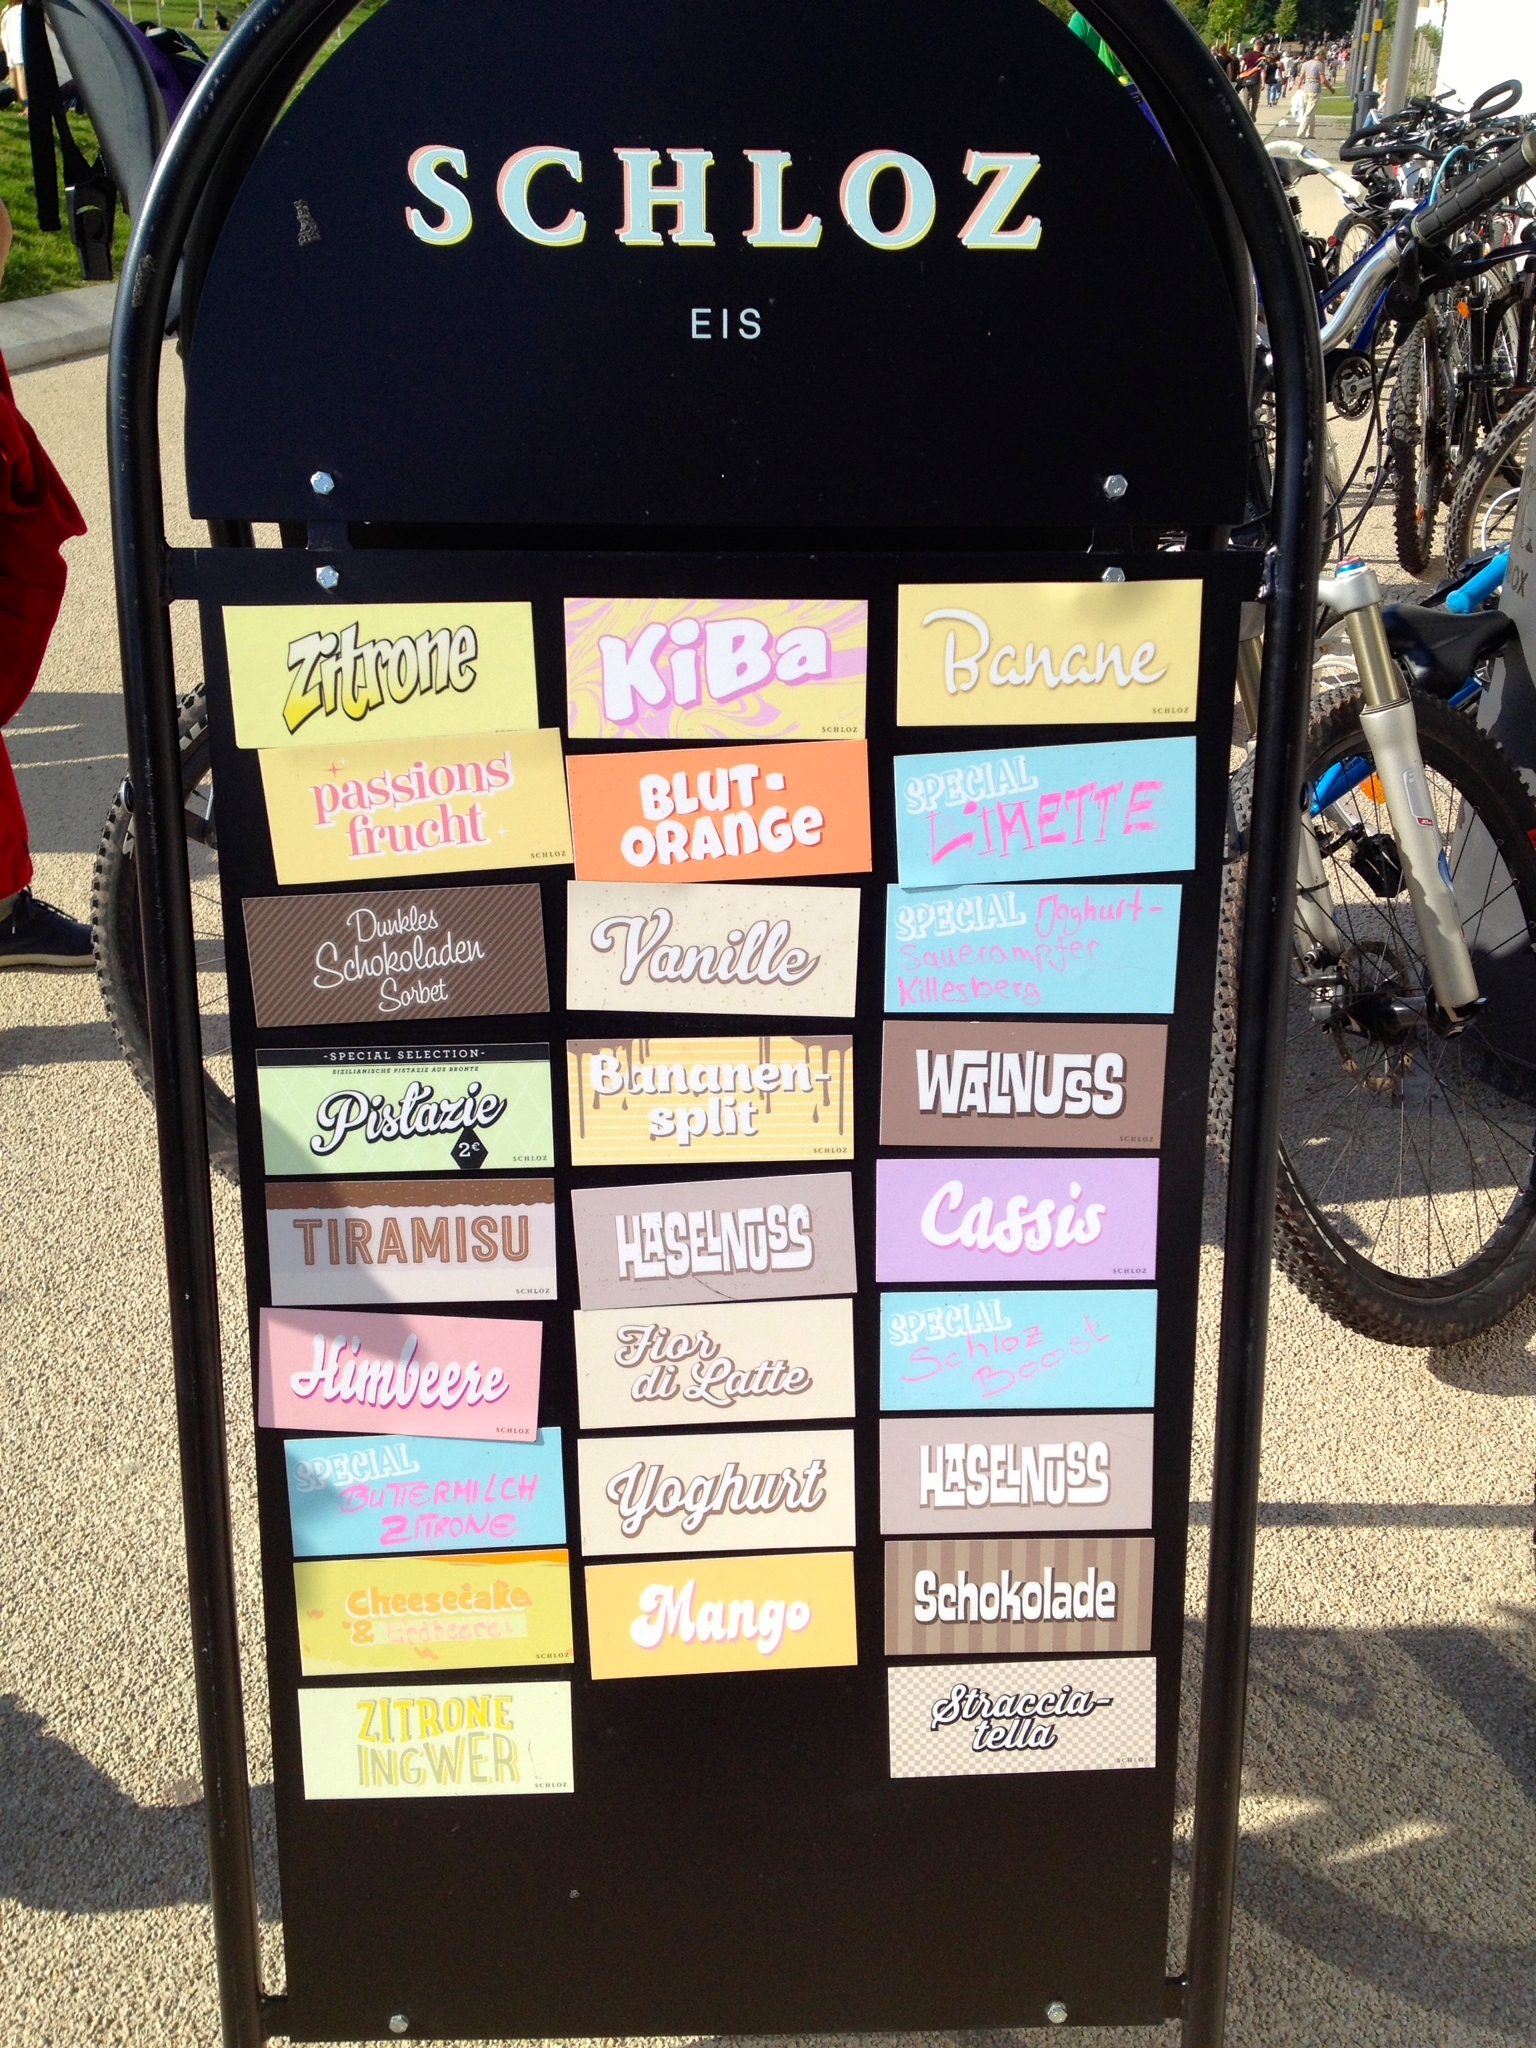 The ice cream flavors today at Schloz Eis